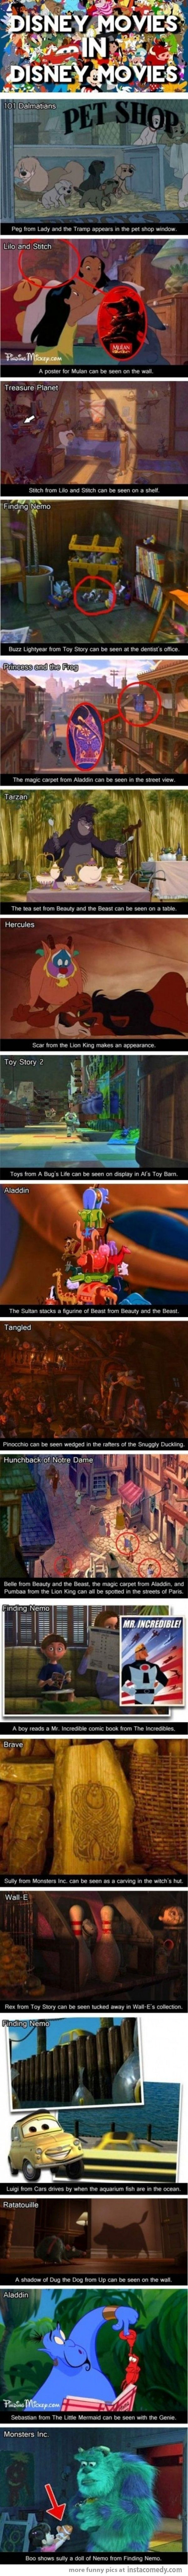 Disney Movie Conspiracy